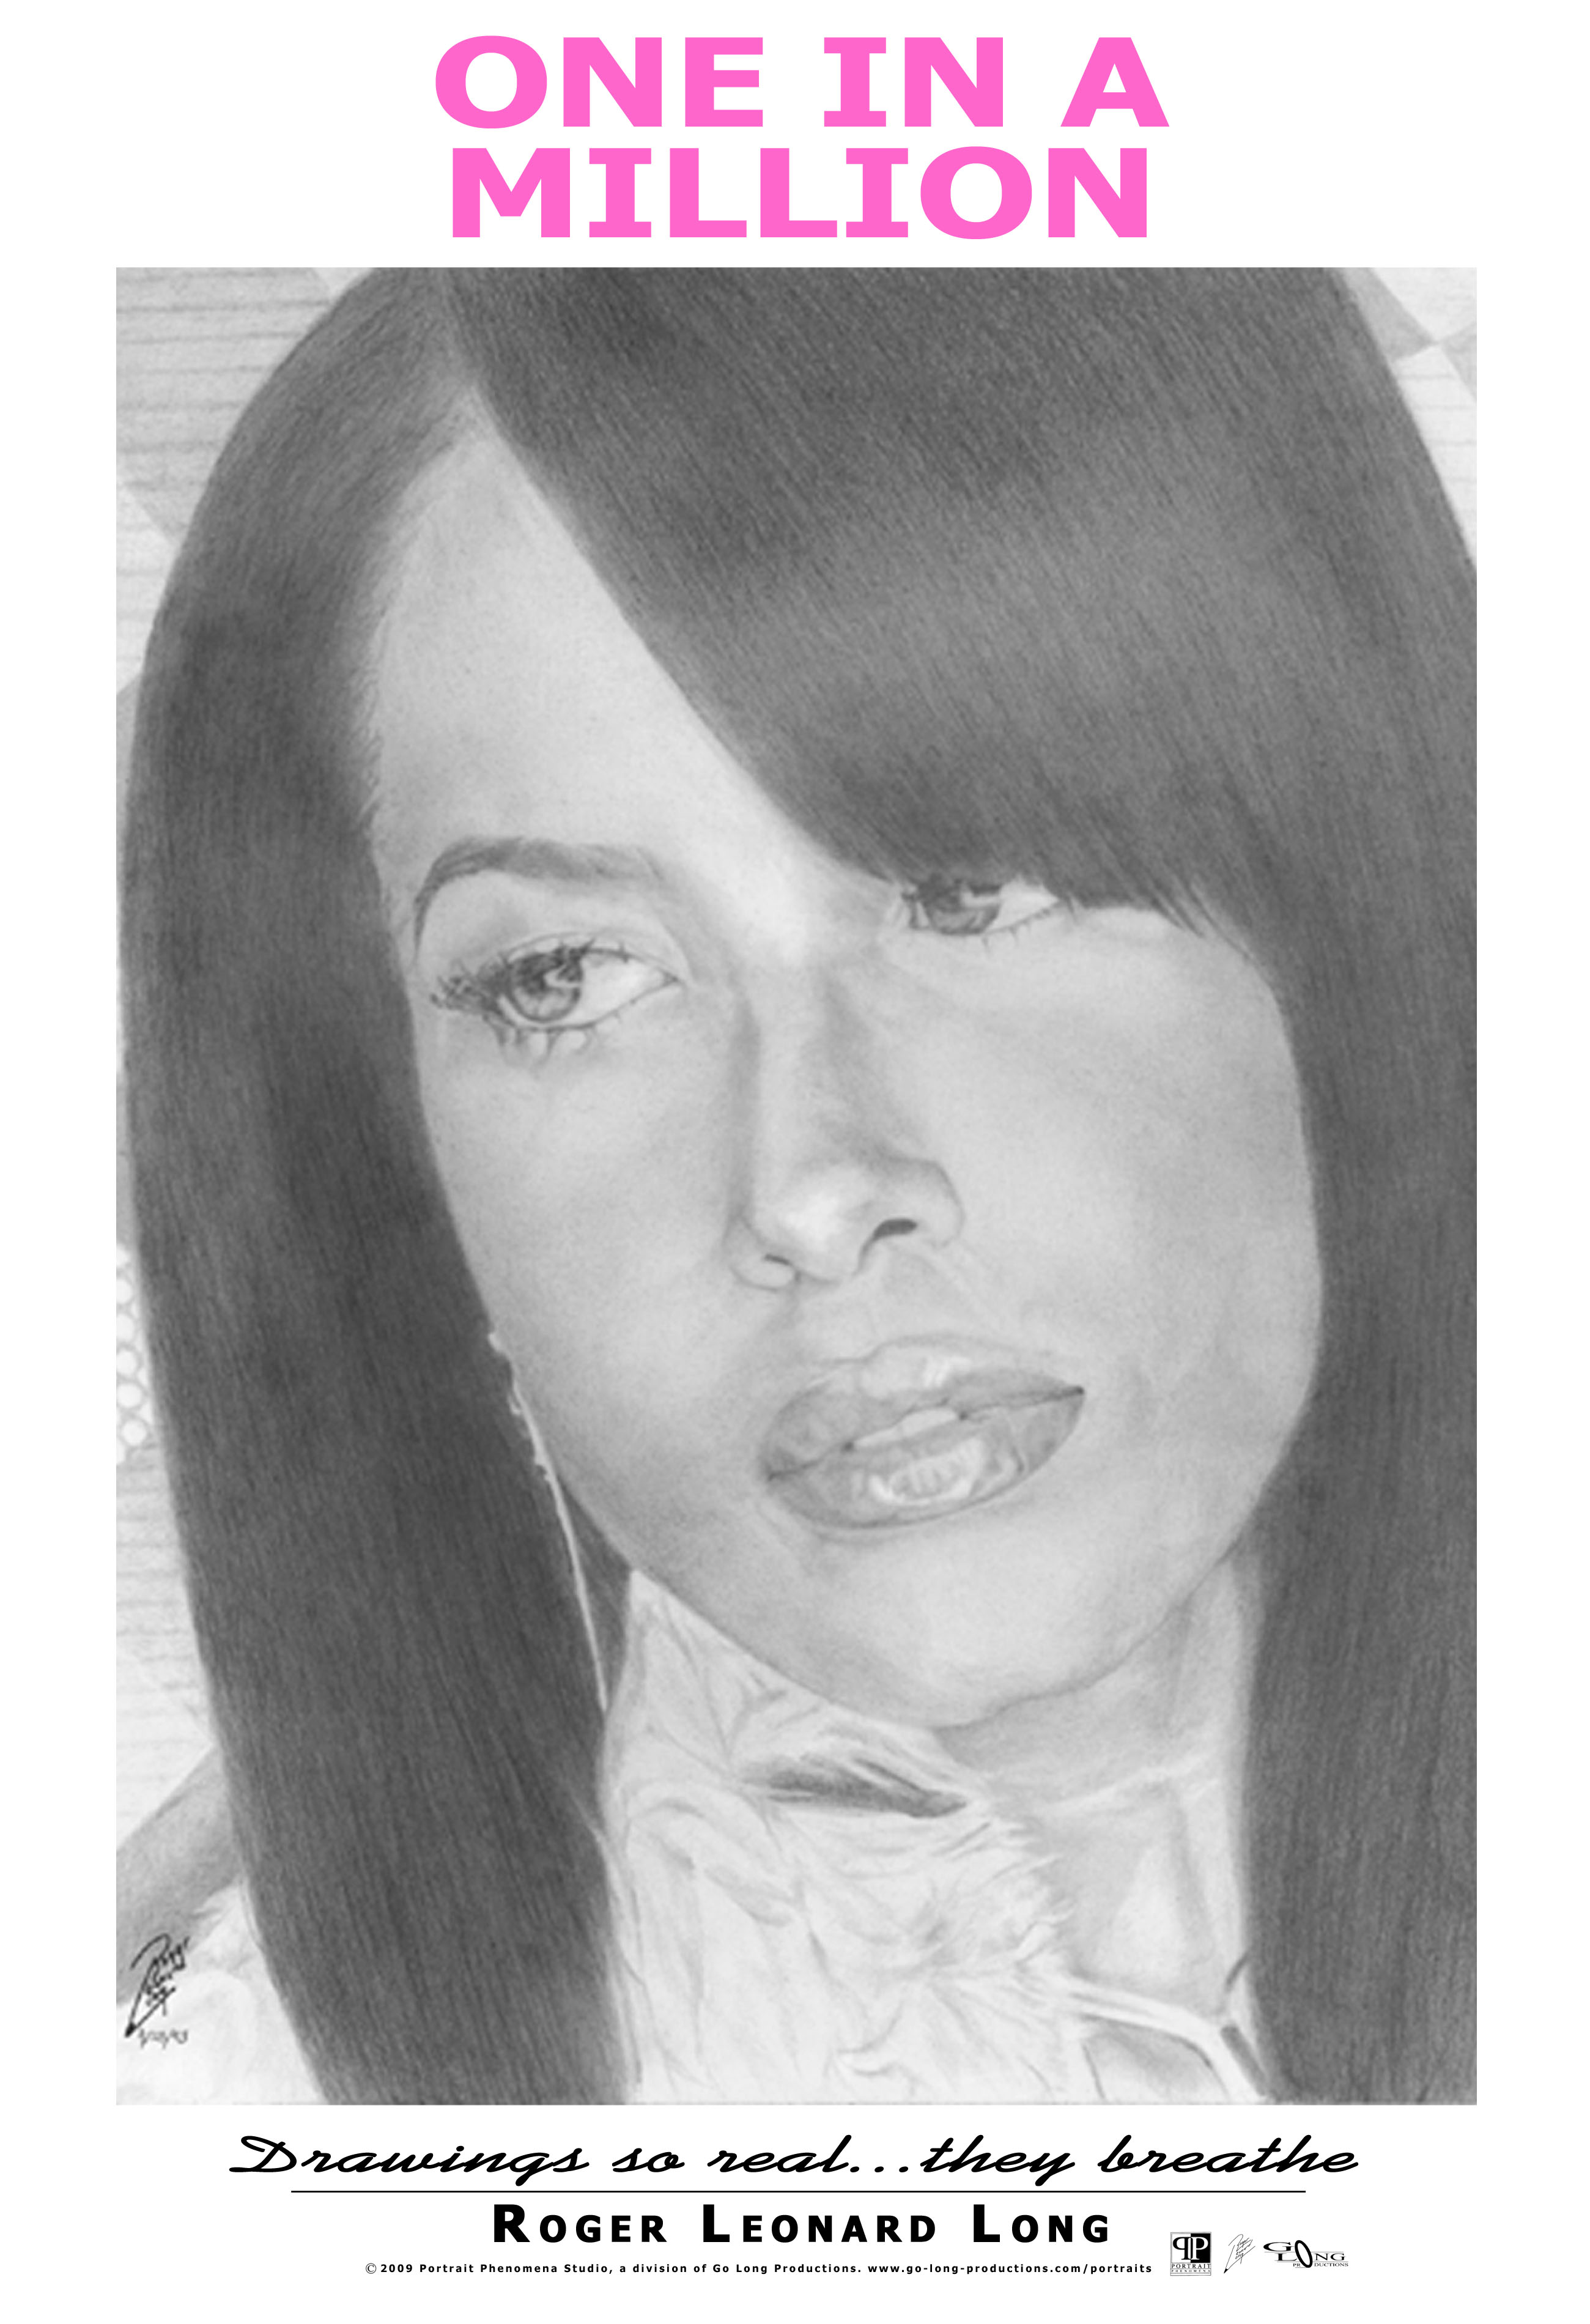 """This is an exclusive original poster of Aaliyah from Roger Leonard Long. It features his photo realistic portrait drawing of urban R&B singer, Aaliyah. It is part of the Long collection of legendary cultural and musical figures. This high-quality poster print """"One in a Million"""" captures the realism of that original work. The poster will be delivered ready for easy framing/mounting."""